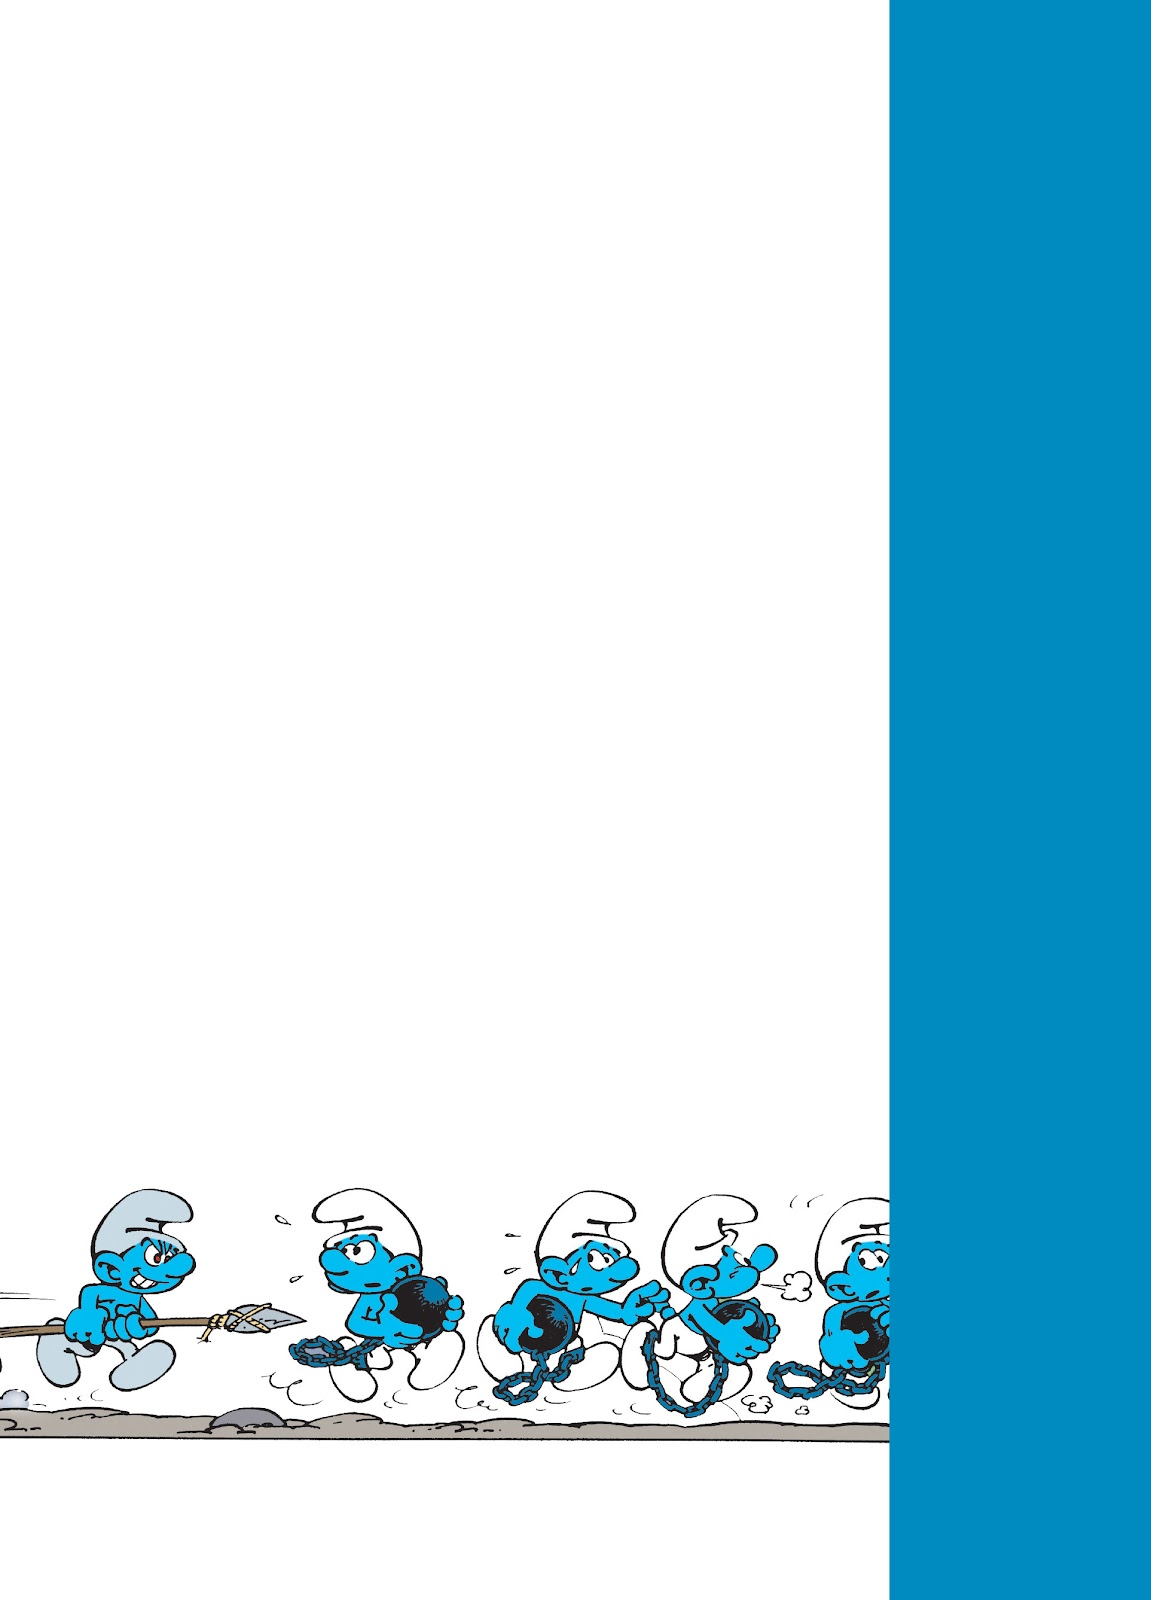 Read online The Smurfs comic -  Issue #22 - 3